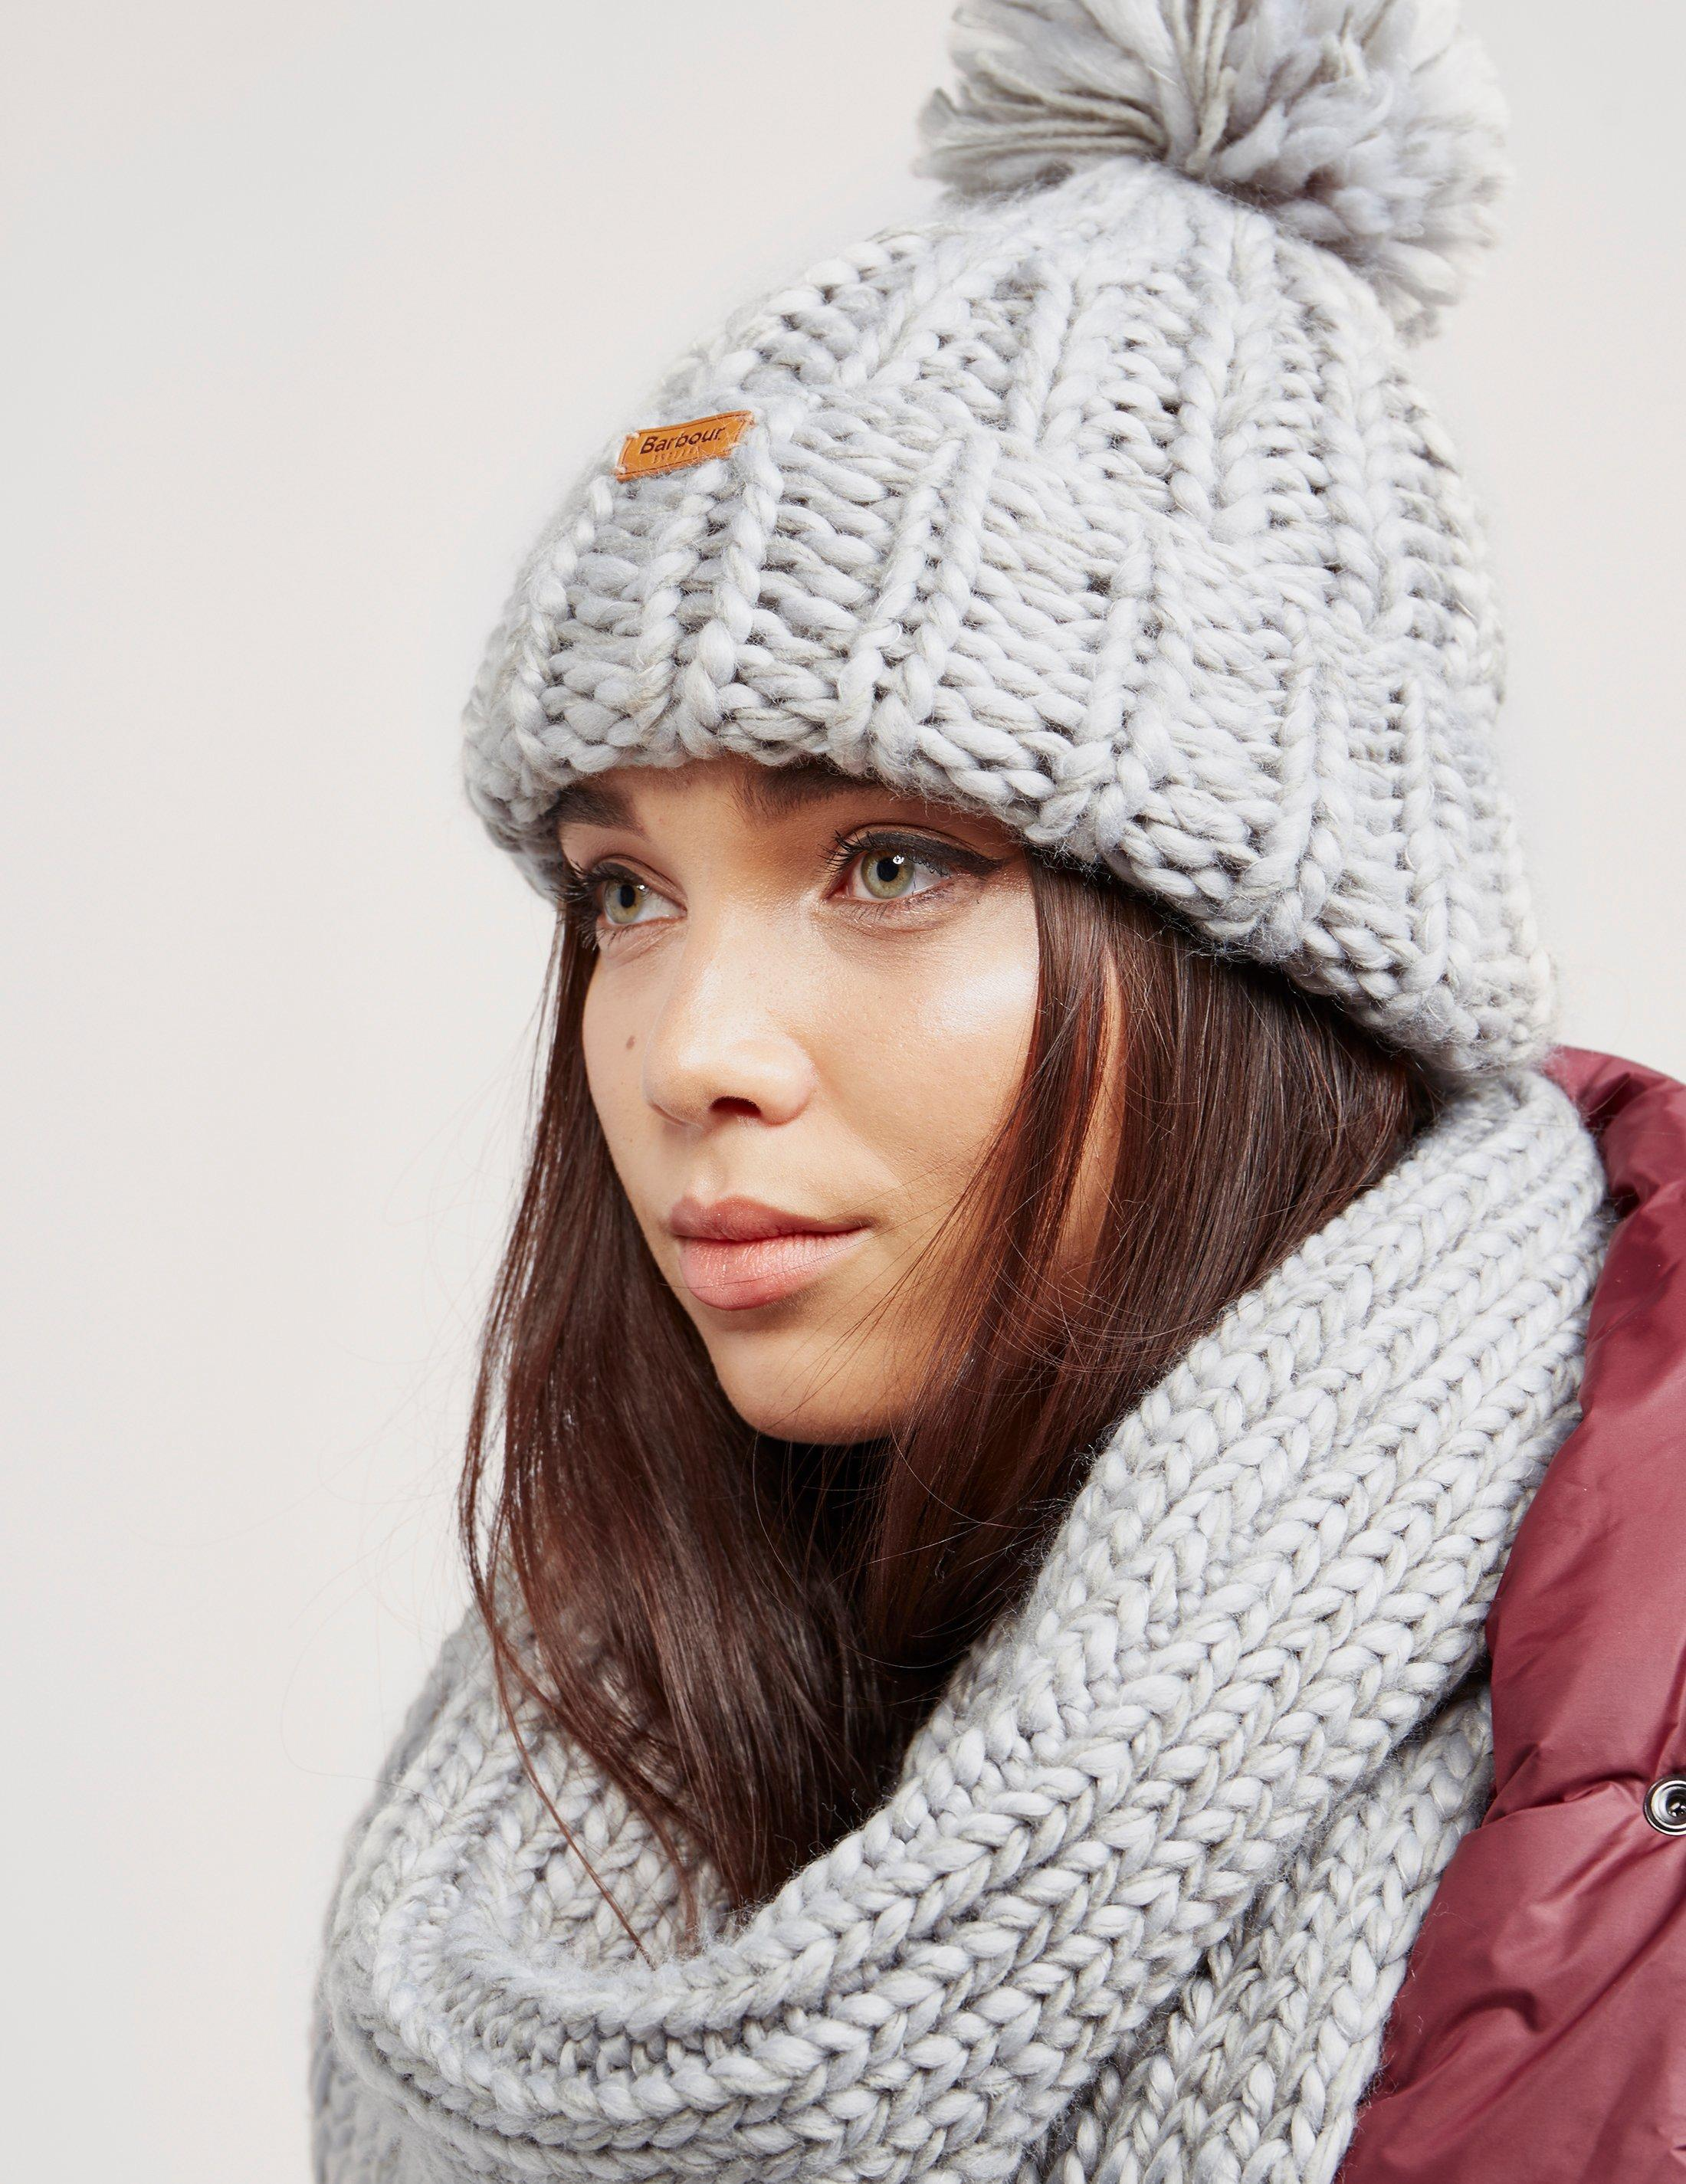 Lyst - Barbour Womens Chunky Hat And Scarf Set Grey in Gray b18f5499a08